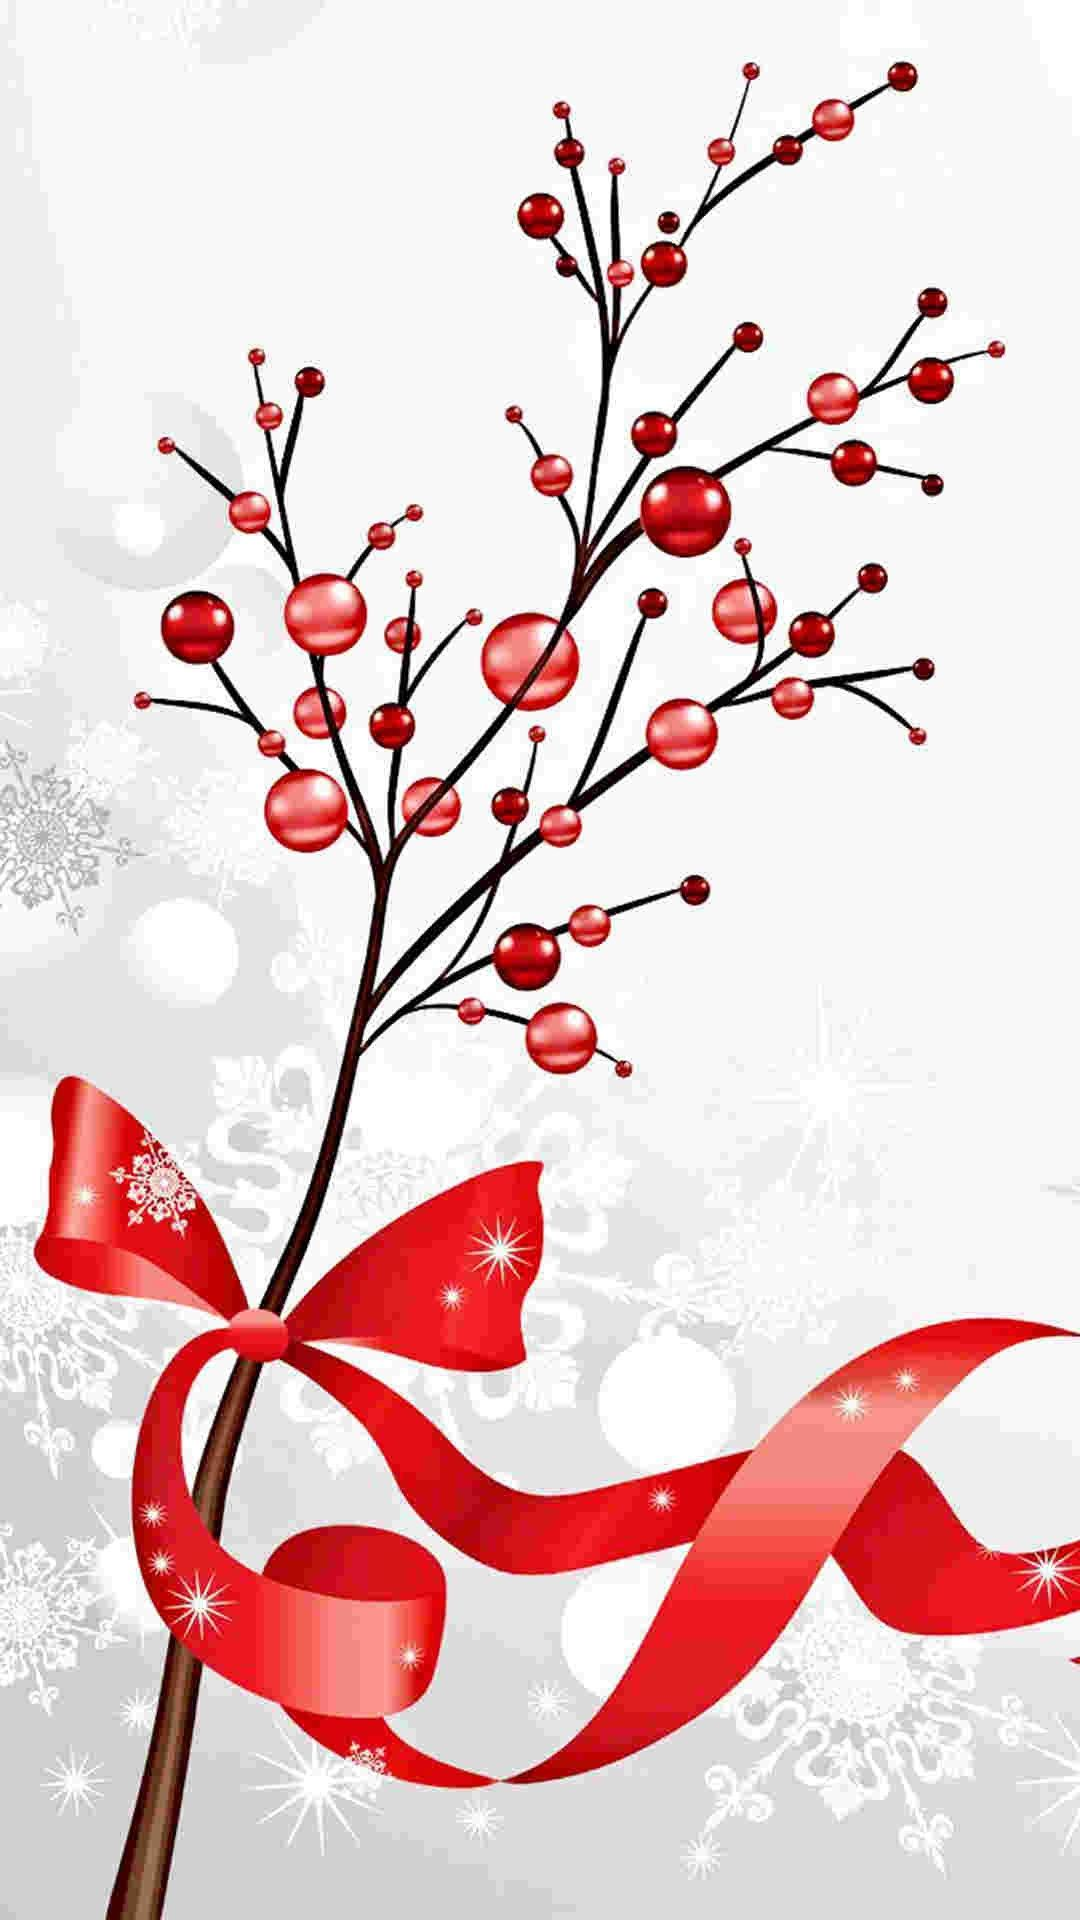 red berry Christmas tree iPhone 6 plus wallpaper ideas - ribbon ...